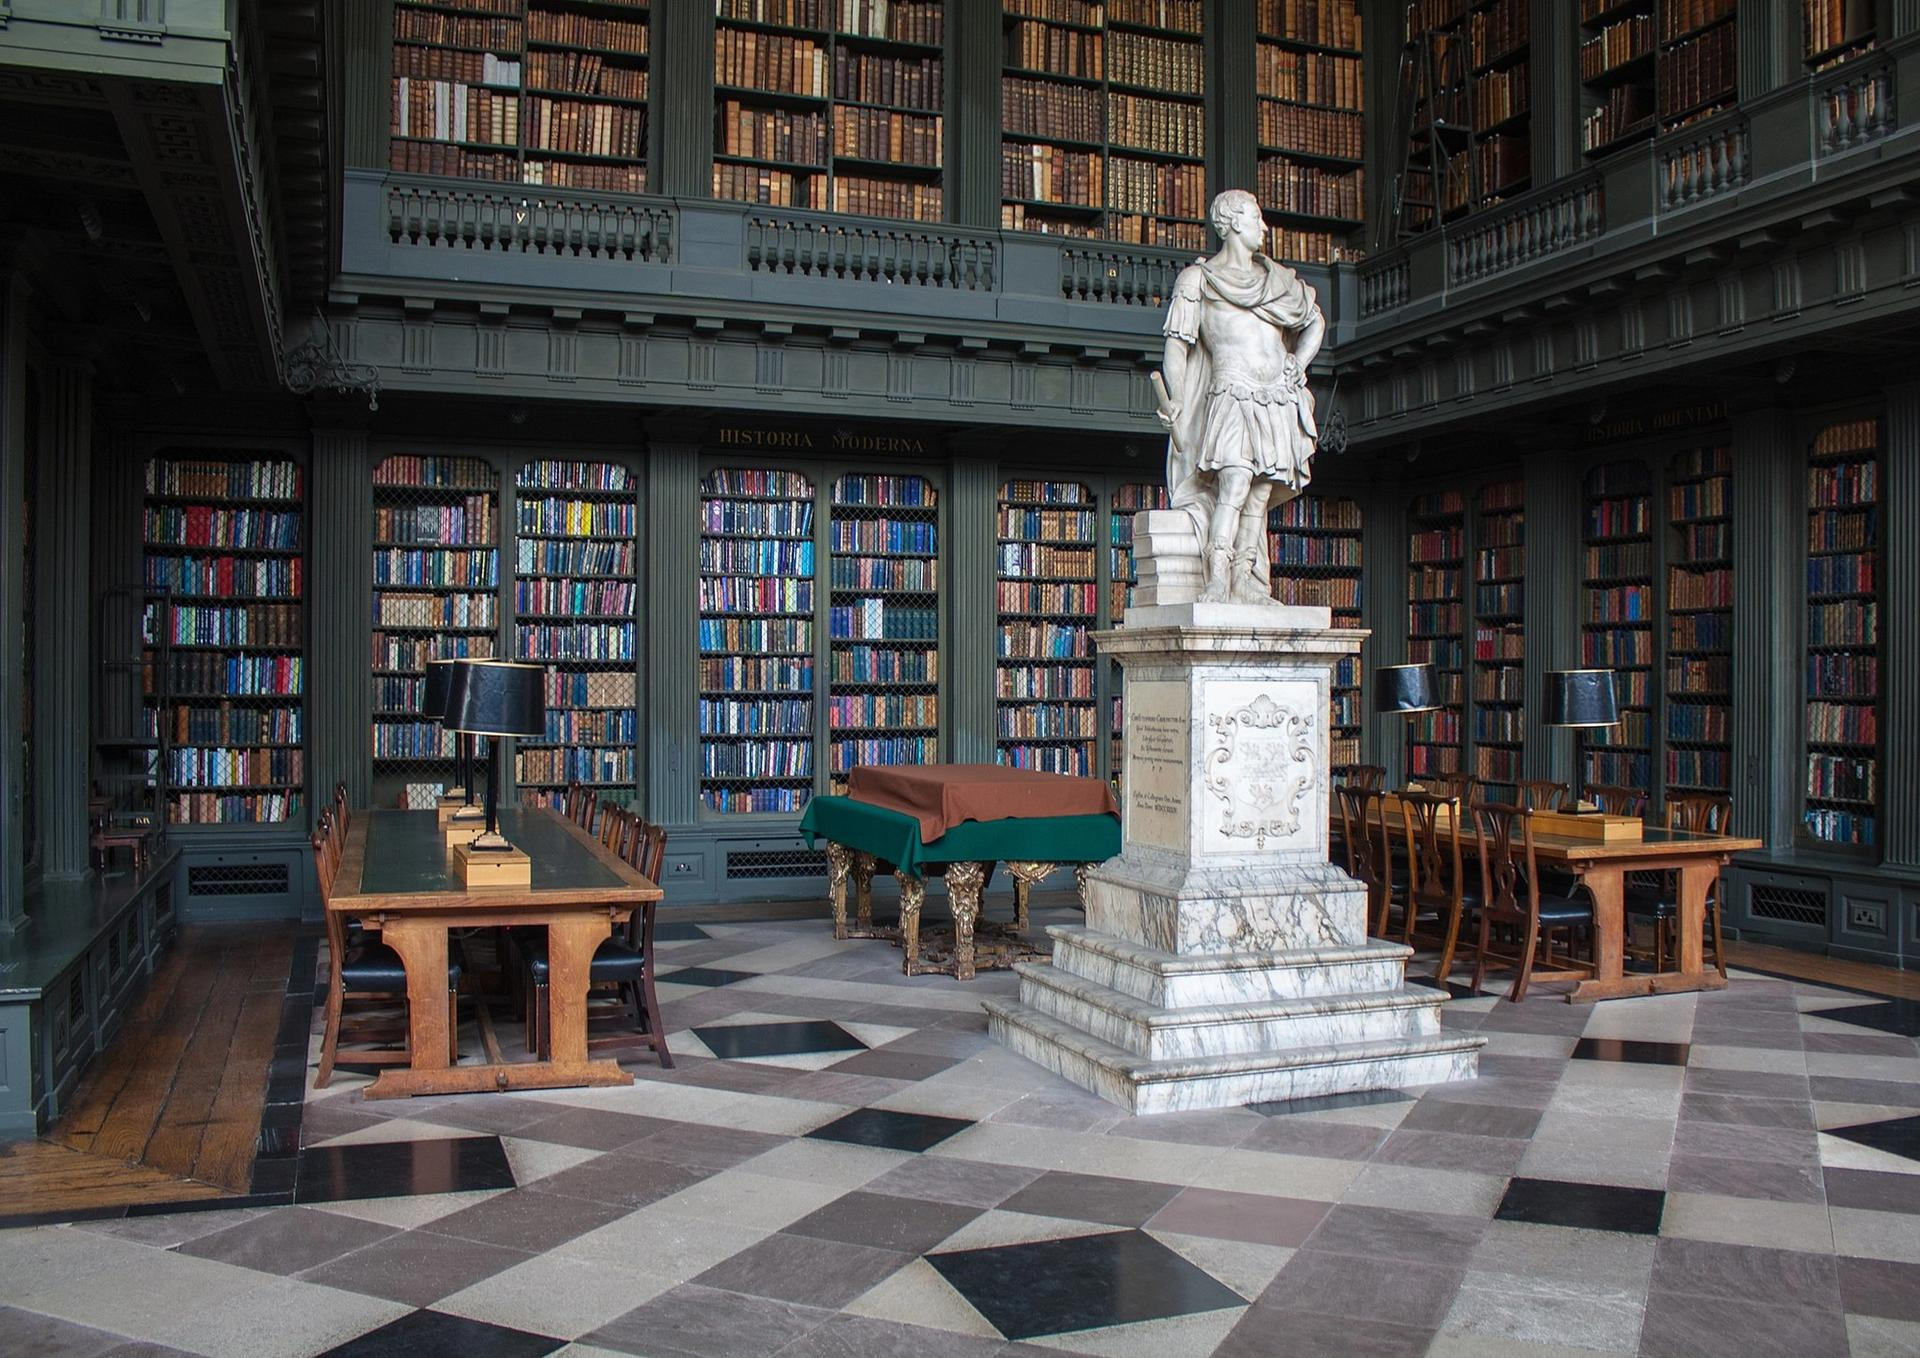 A statue of Christopher Codrington by Henry Cheere is located in the library at All Souls in Oxford